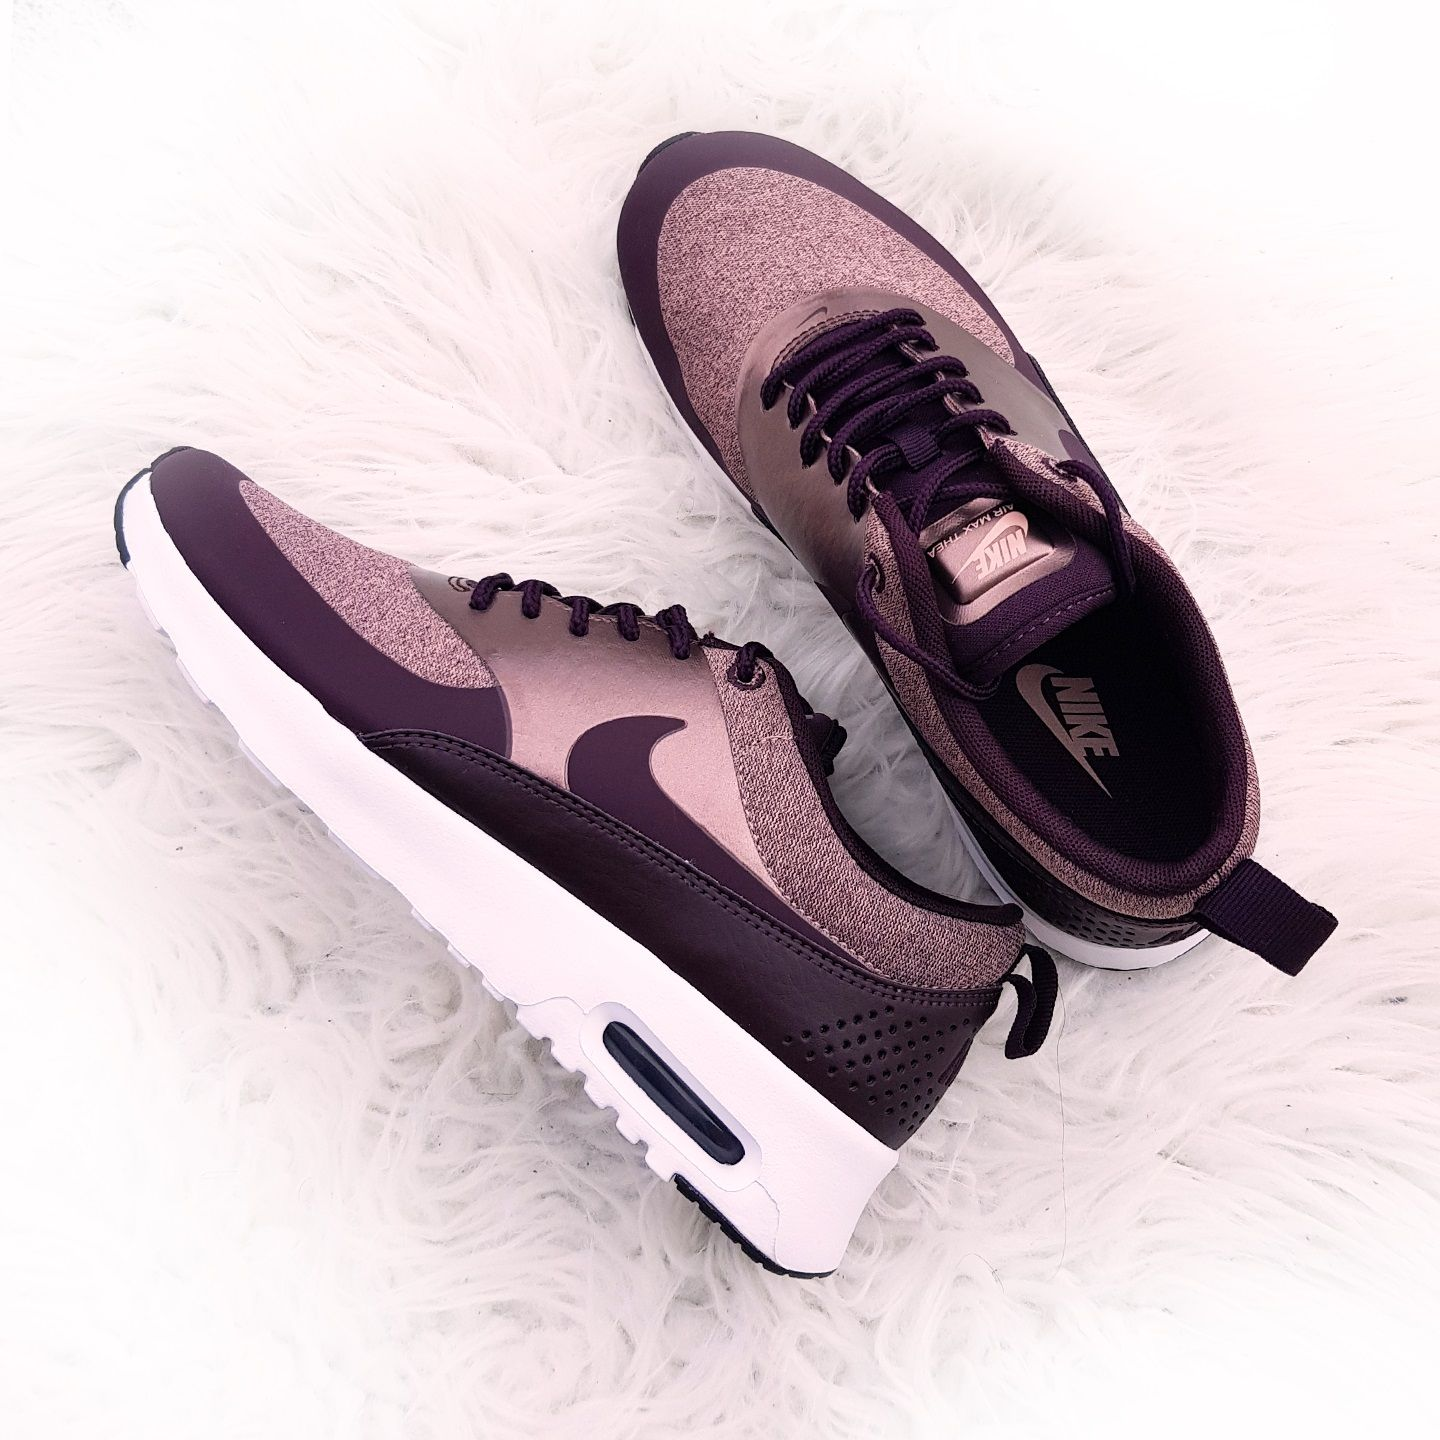 6a585e2fb374e1 Nike Air Max Thea Knit - Port Wine Particle Pink Schwarz Metallic Mahogany